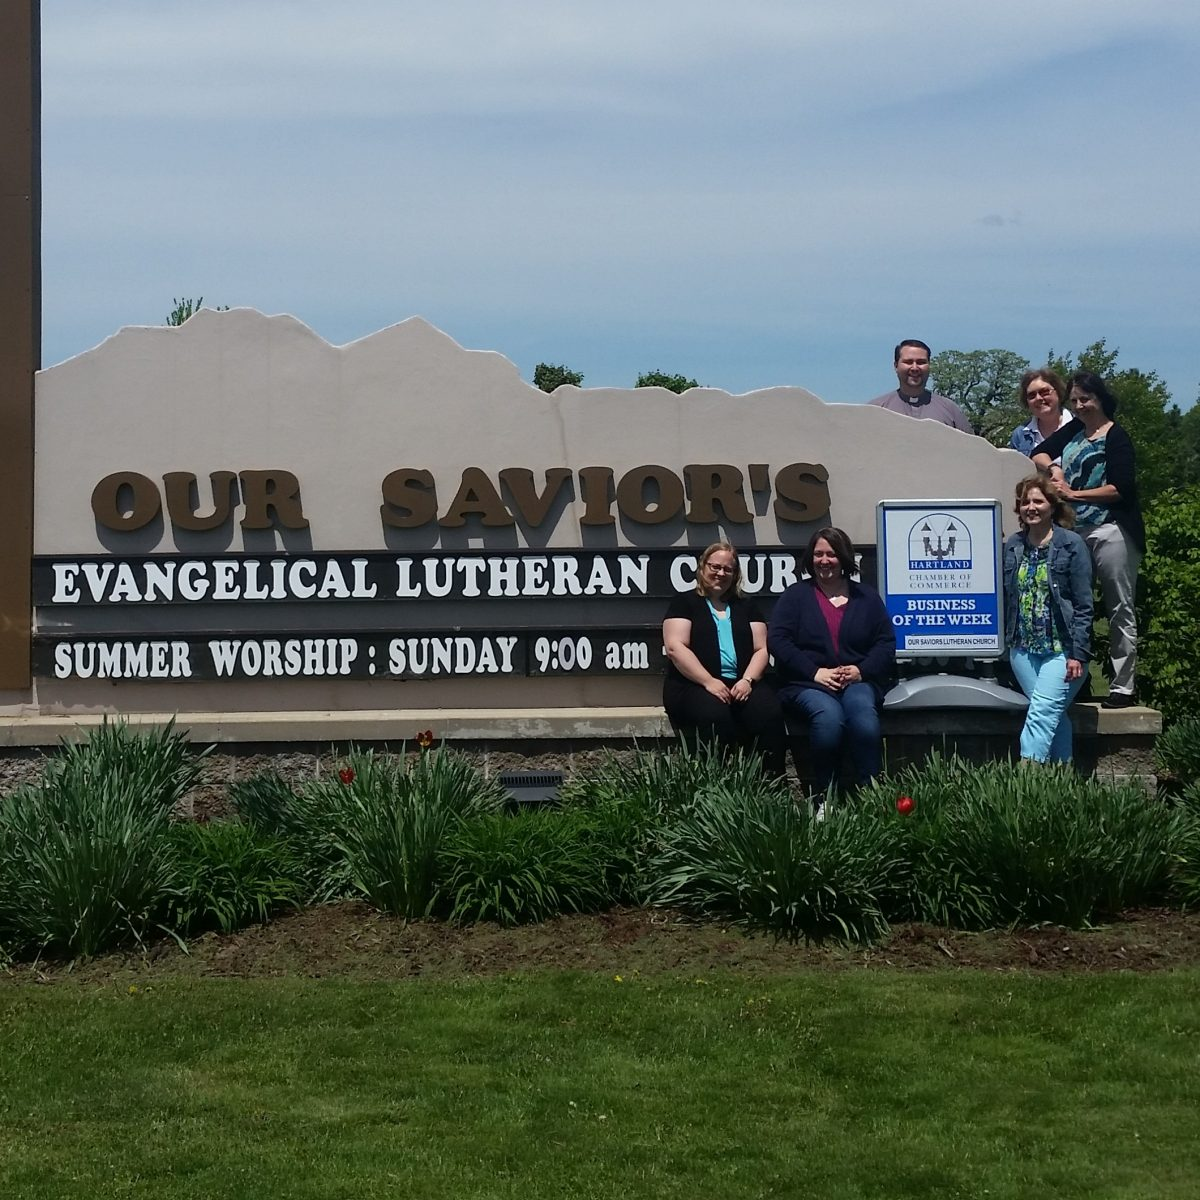 CONGRATULATIONS TO HARTLAND CHAMBER BUSINESS OF THE WEEK – OUR SAVIOR'S EVANGELICAL LUTHERAN CHURCH